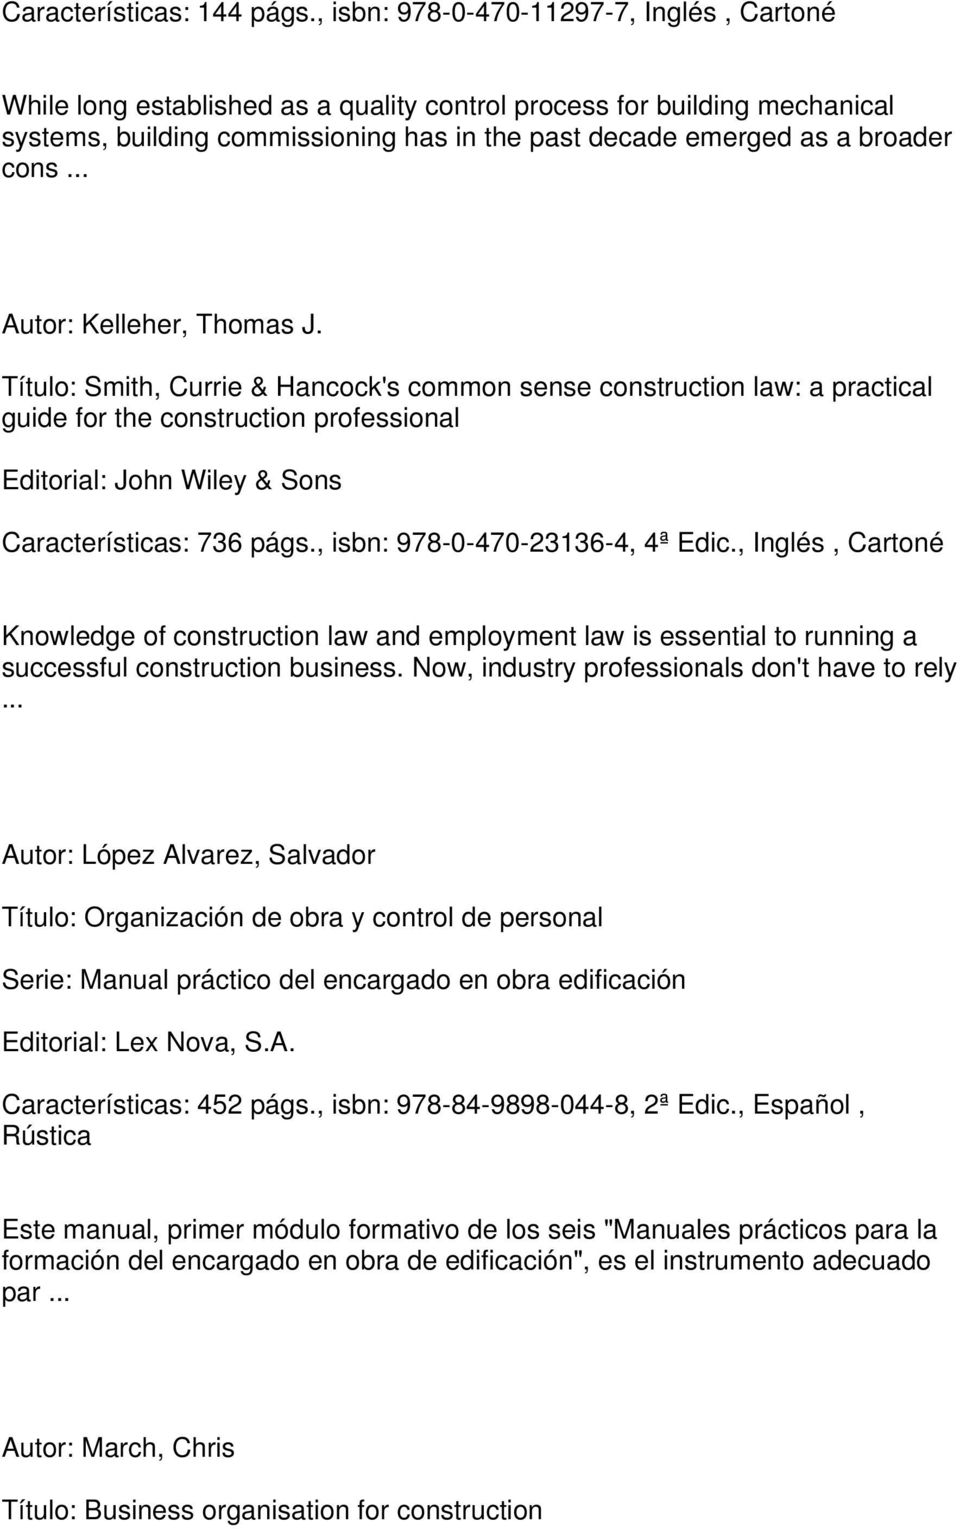 Autor: Kelleher, Thomas J. Título: Smith, Currie & Hancock's common sense construction law: a practical guide for the construction professional Editorial: John Wiley & Sons Características: 736 págs.